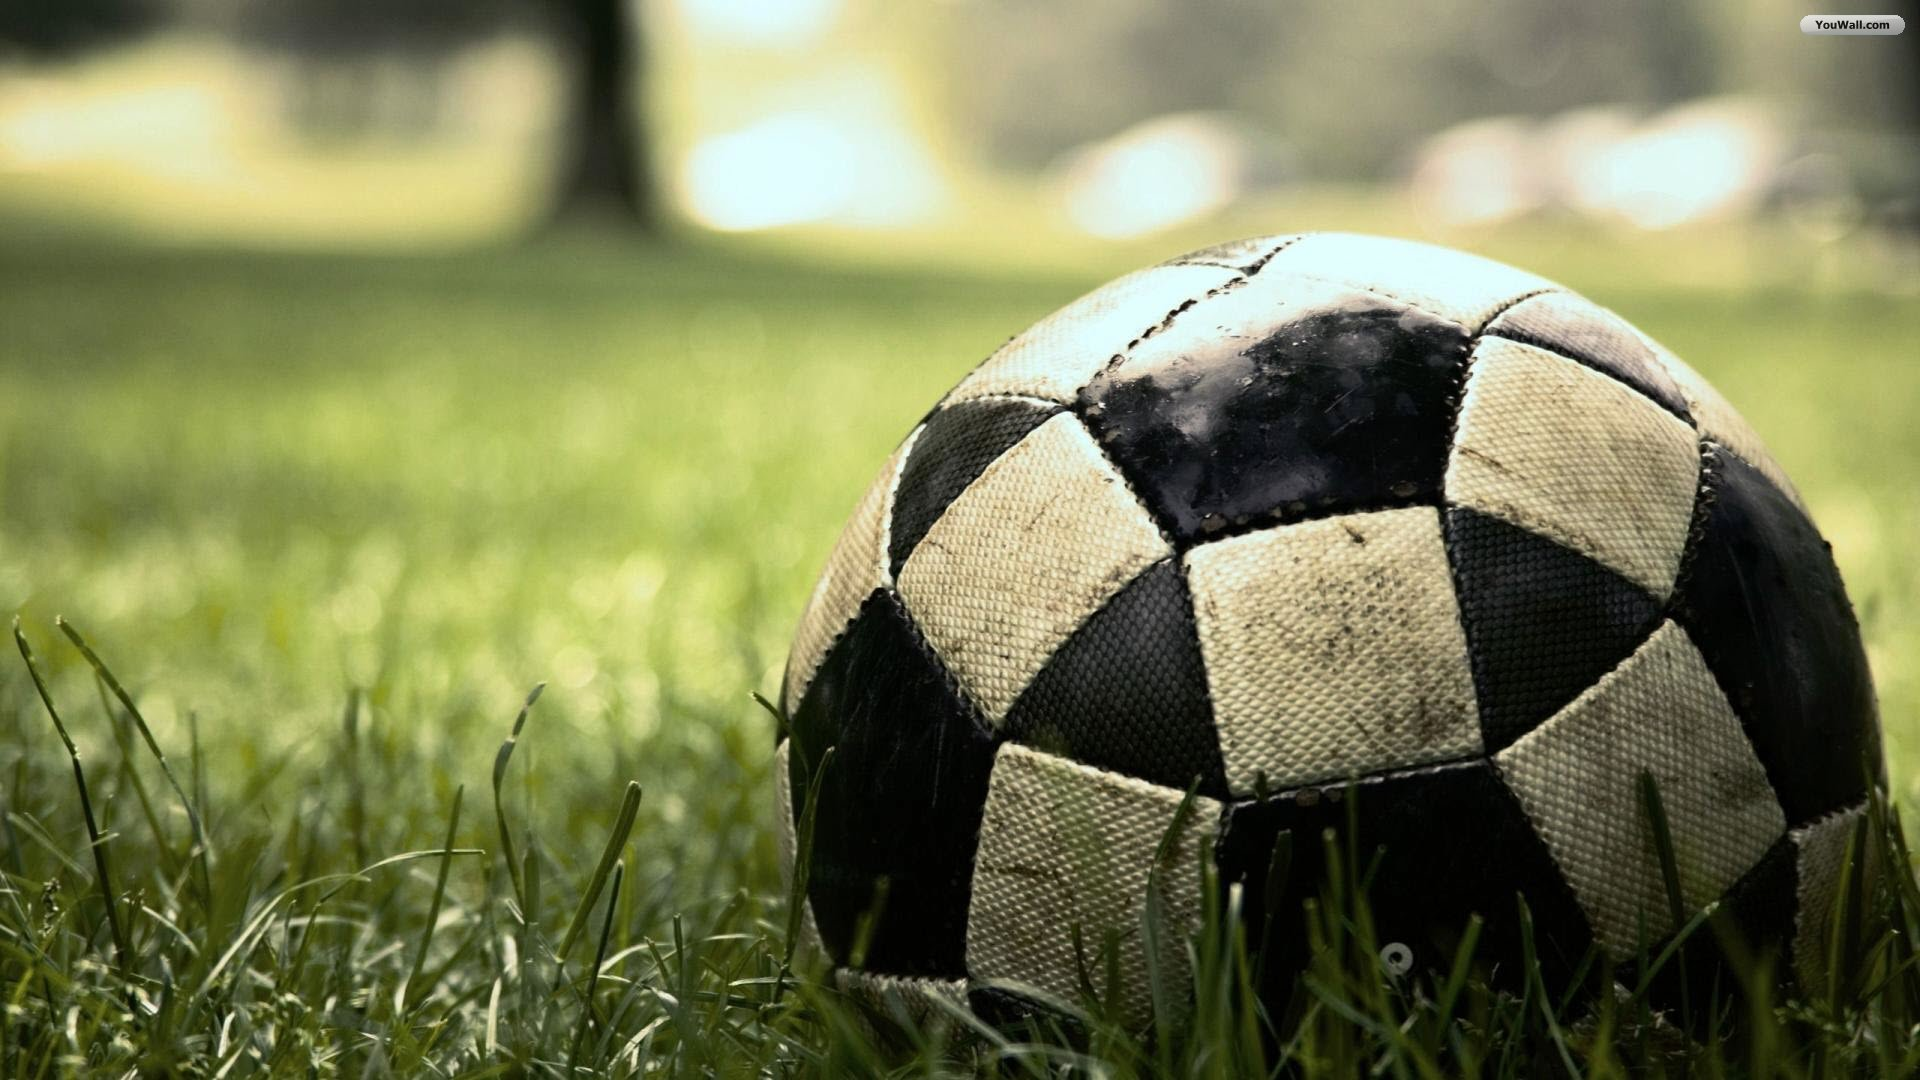 old-soccer-ball-wallpaper